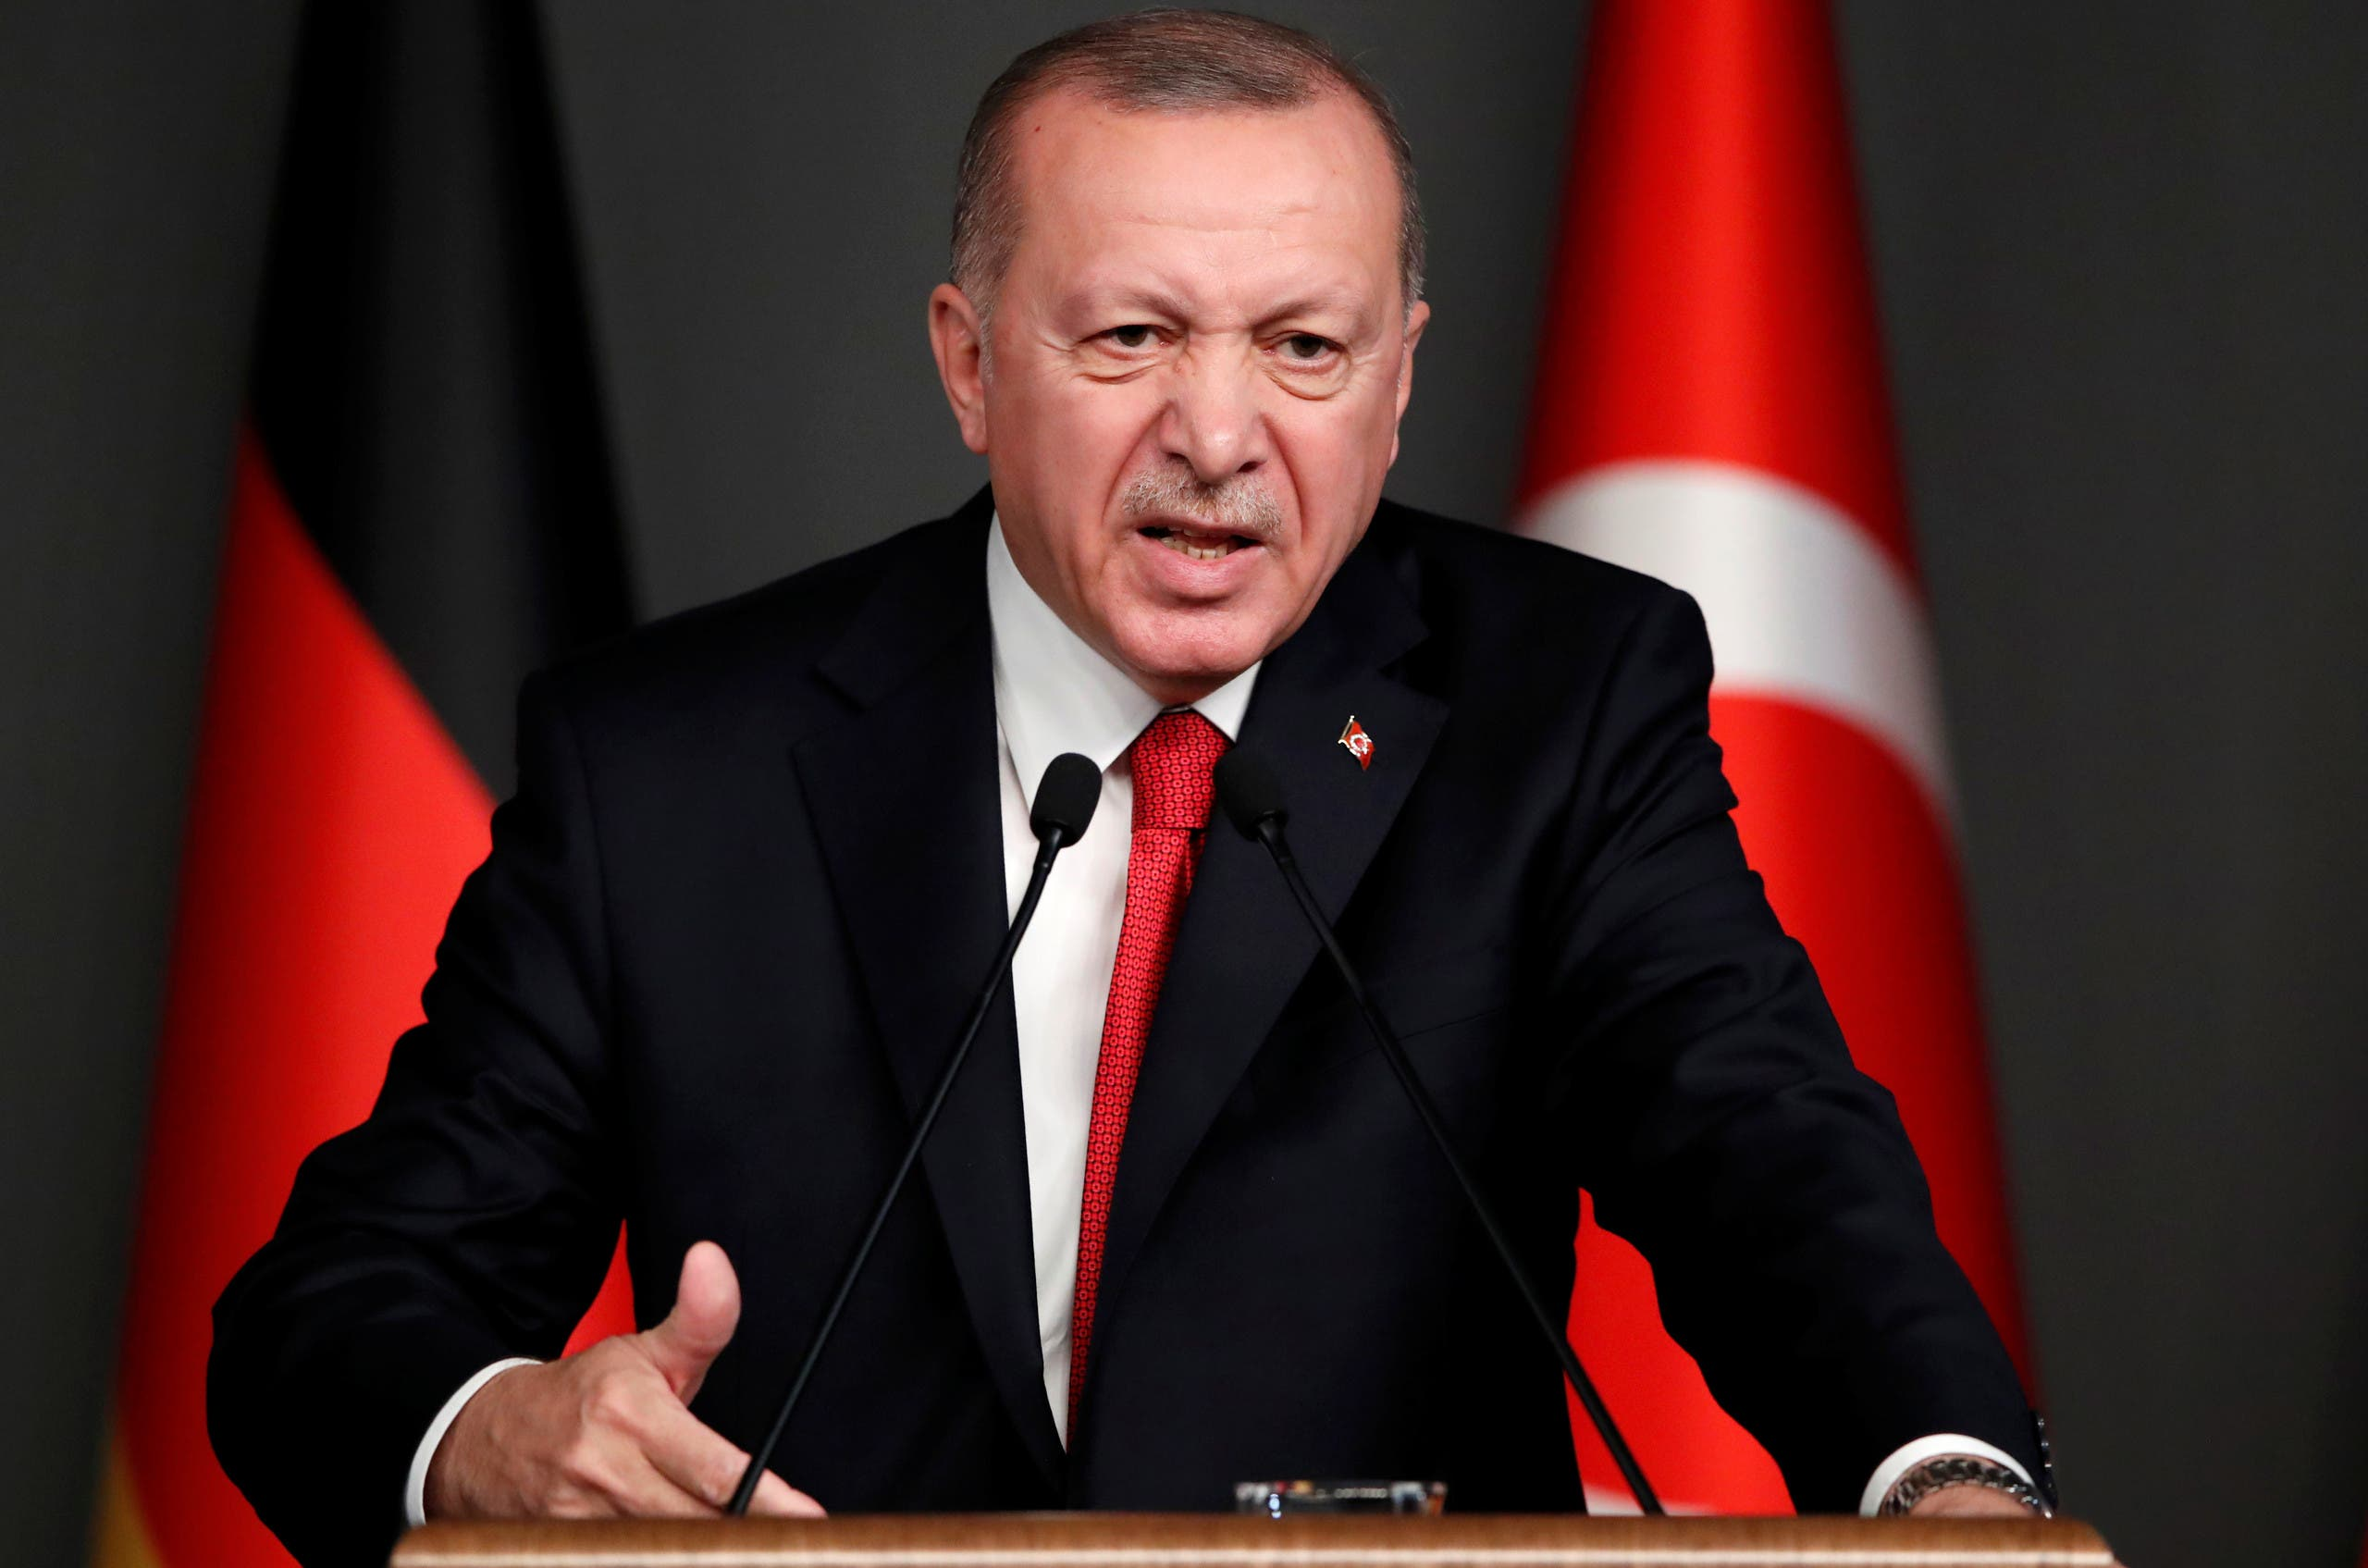 Turkish President Erdogan attends a news conference in Istanbul on January 24, 2020. (Reuters)